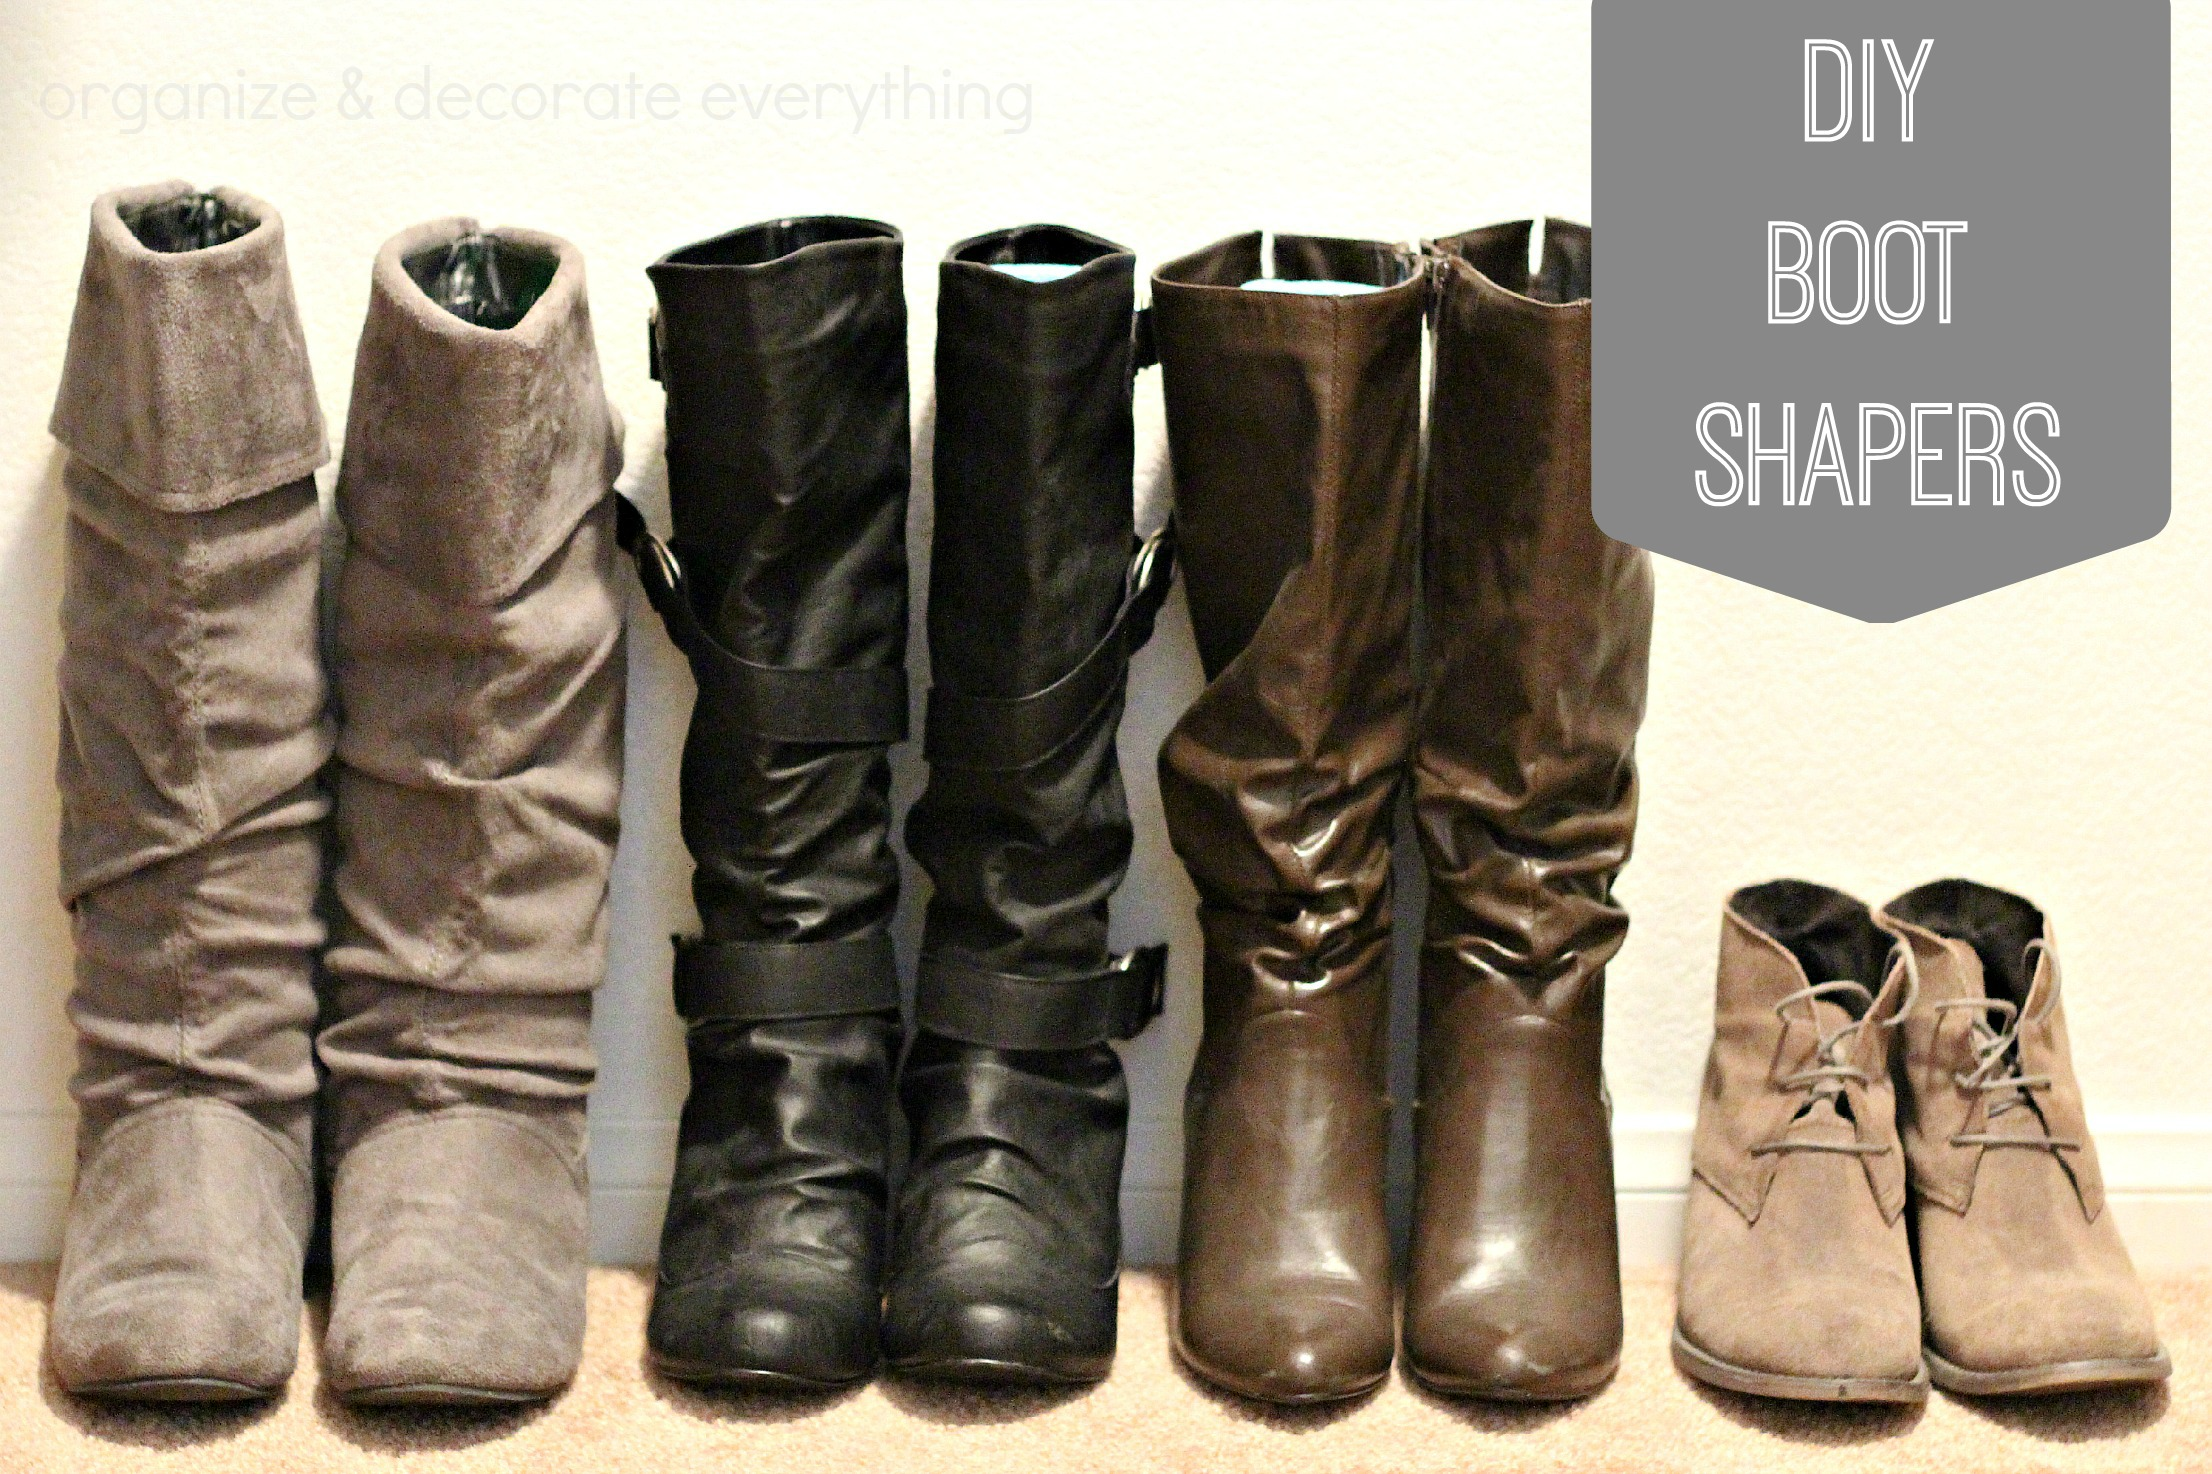 Diy boot shapers organize and decorate everything diy boot shapers solutioingenieria Images